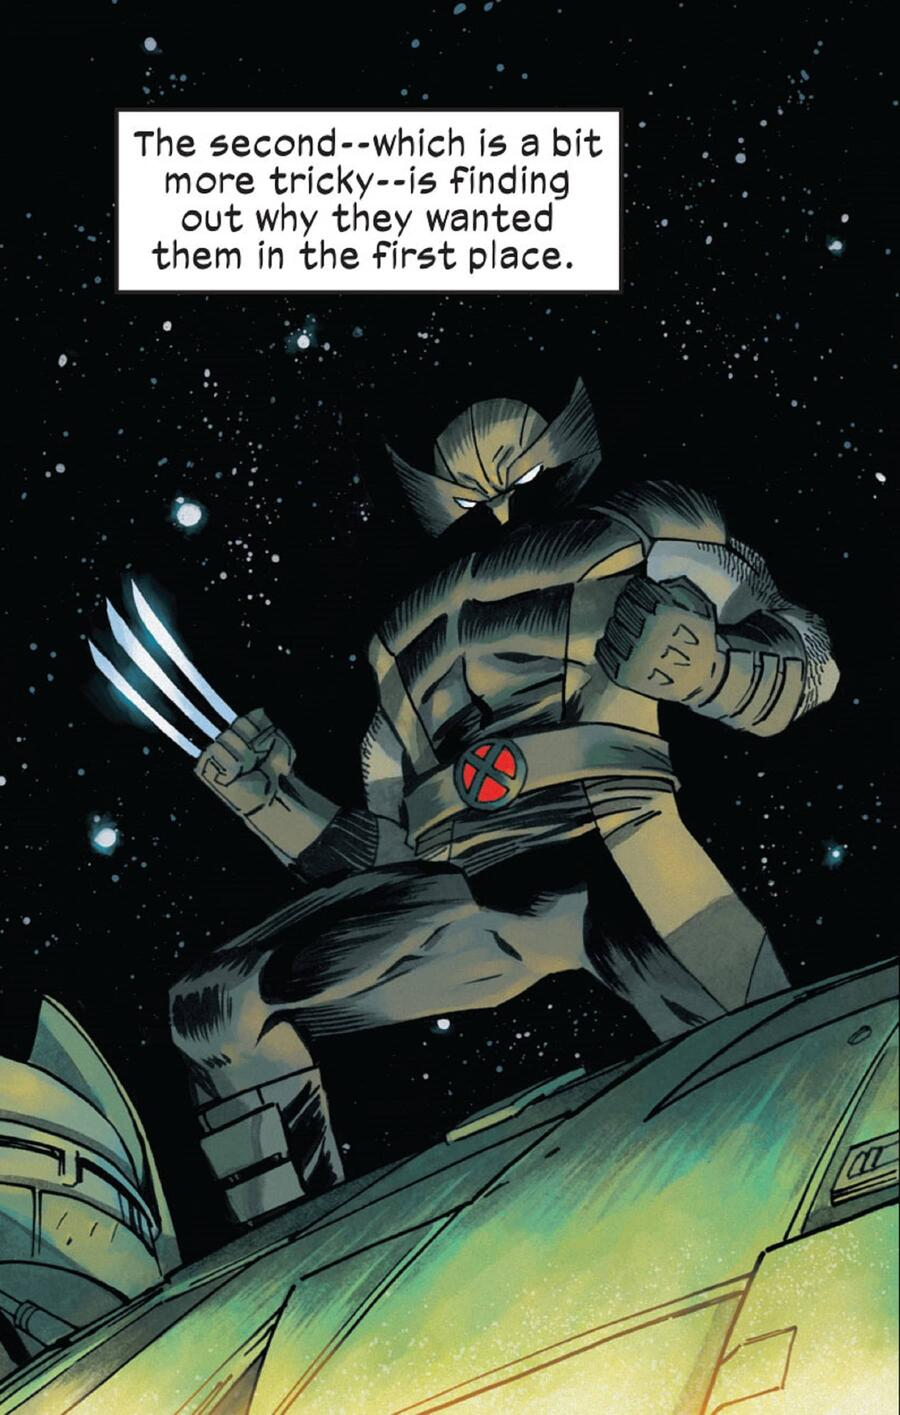 Sample art featuring art from X-MEN UNLIMITED #1.